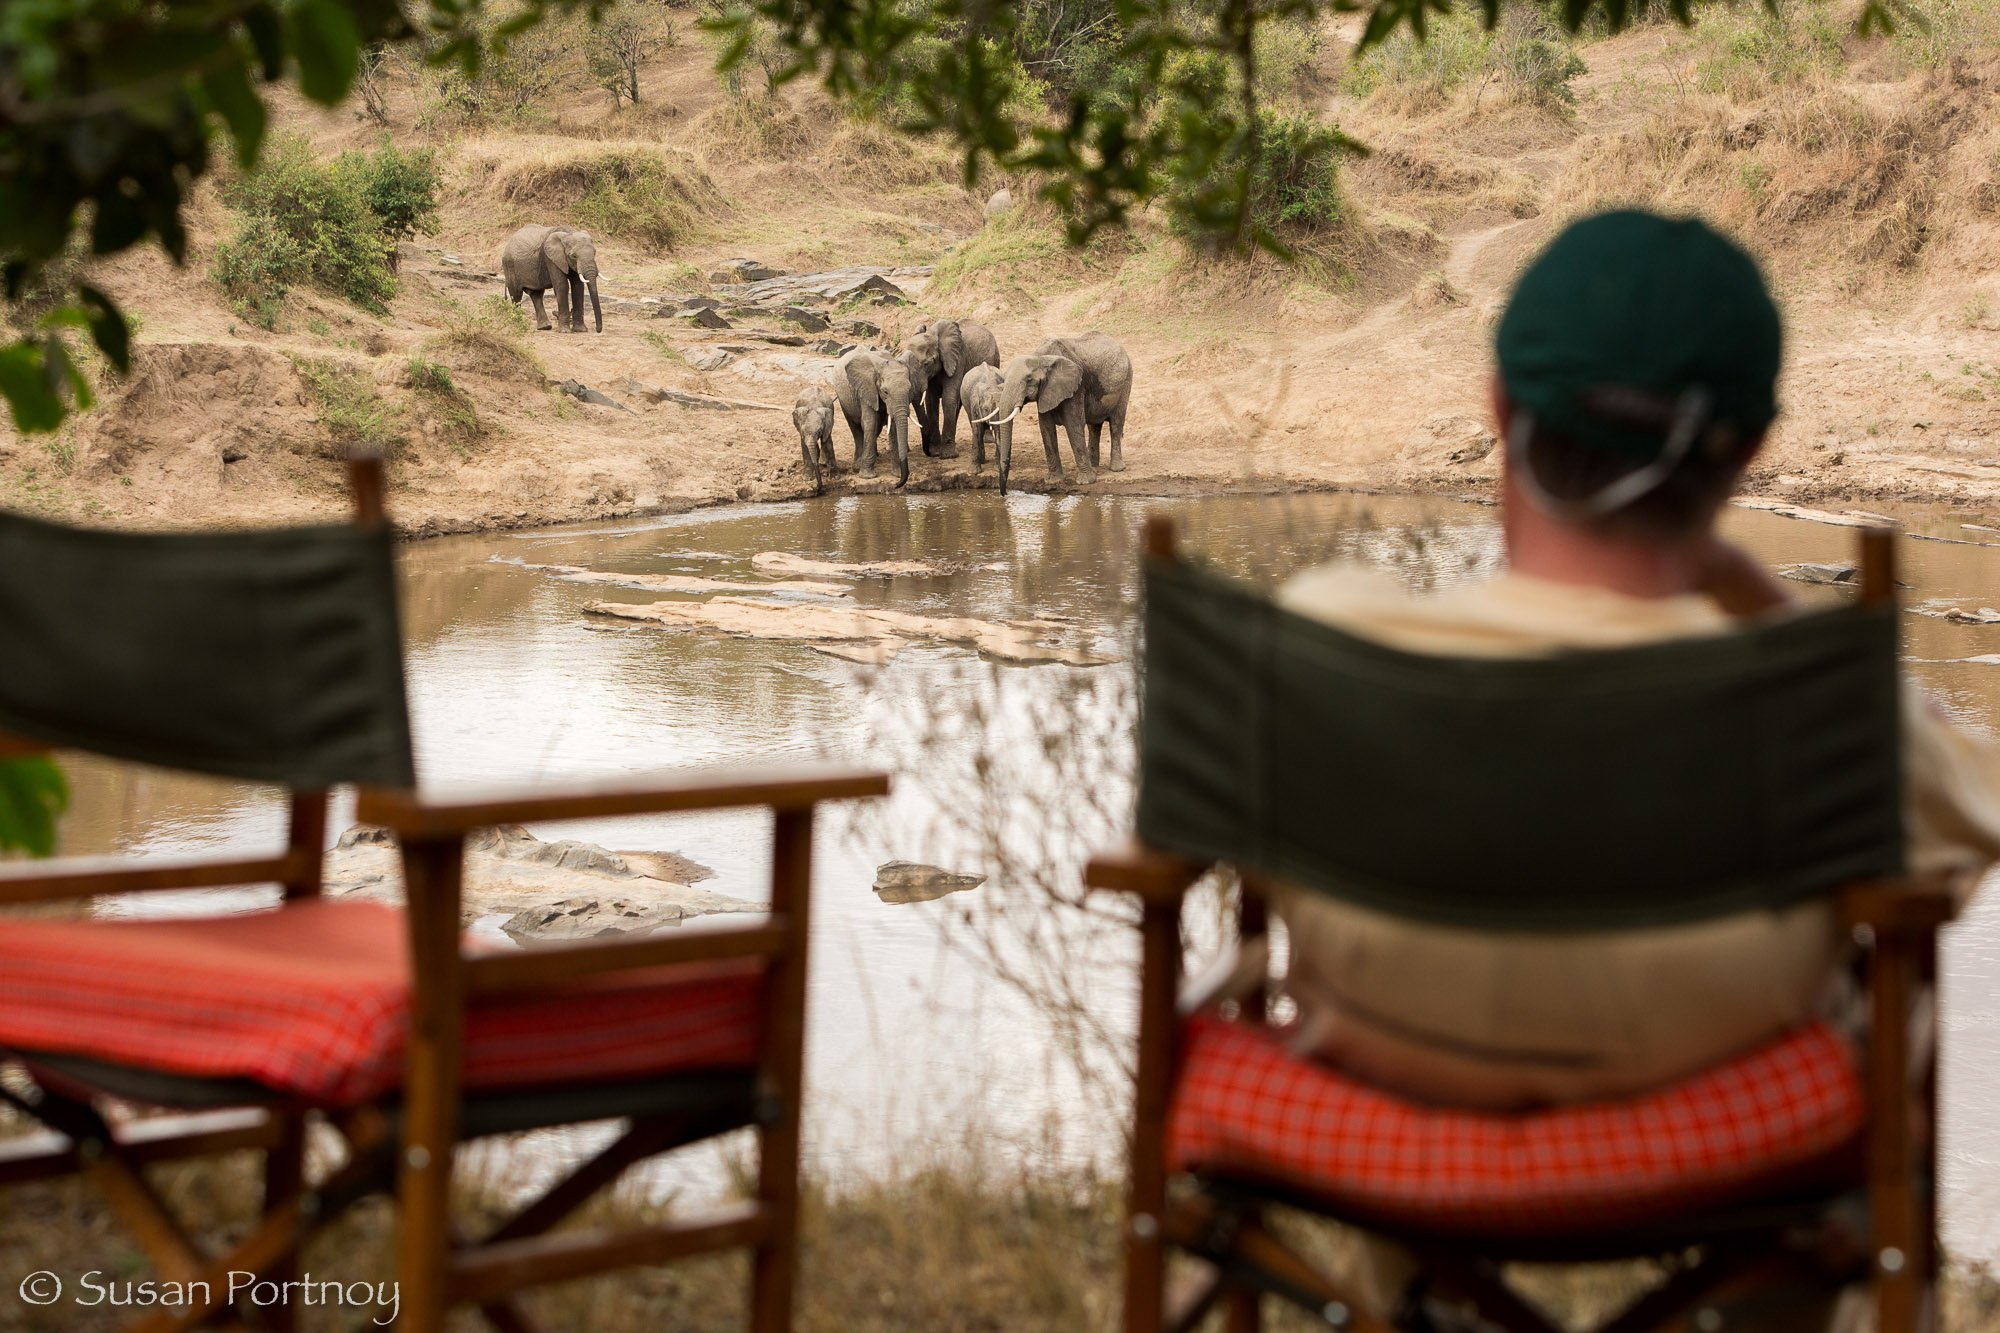 A man watching Elephants drinking water in the Mara River taken during a travel photography tour in Kenya